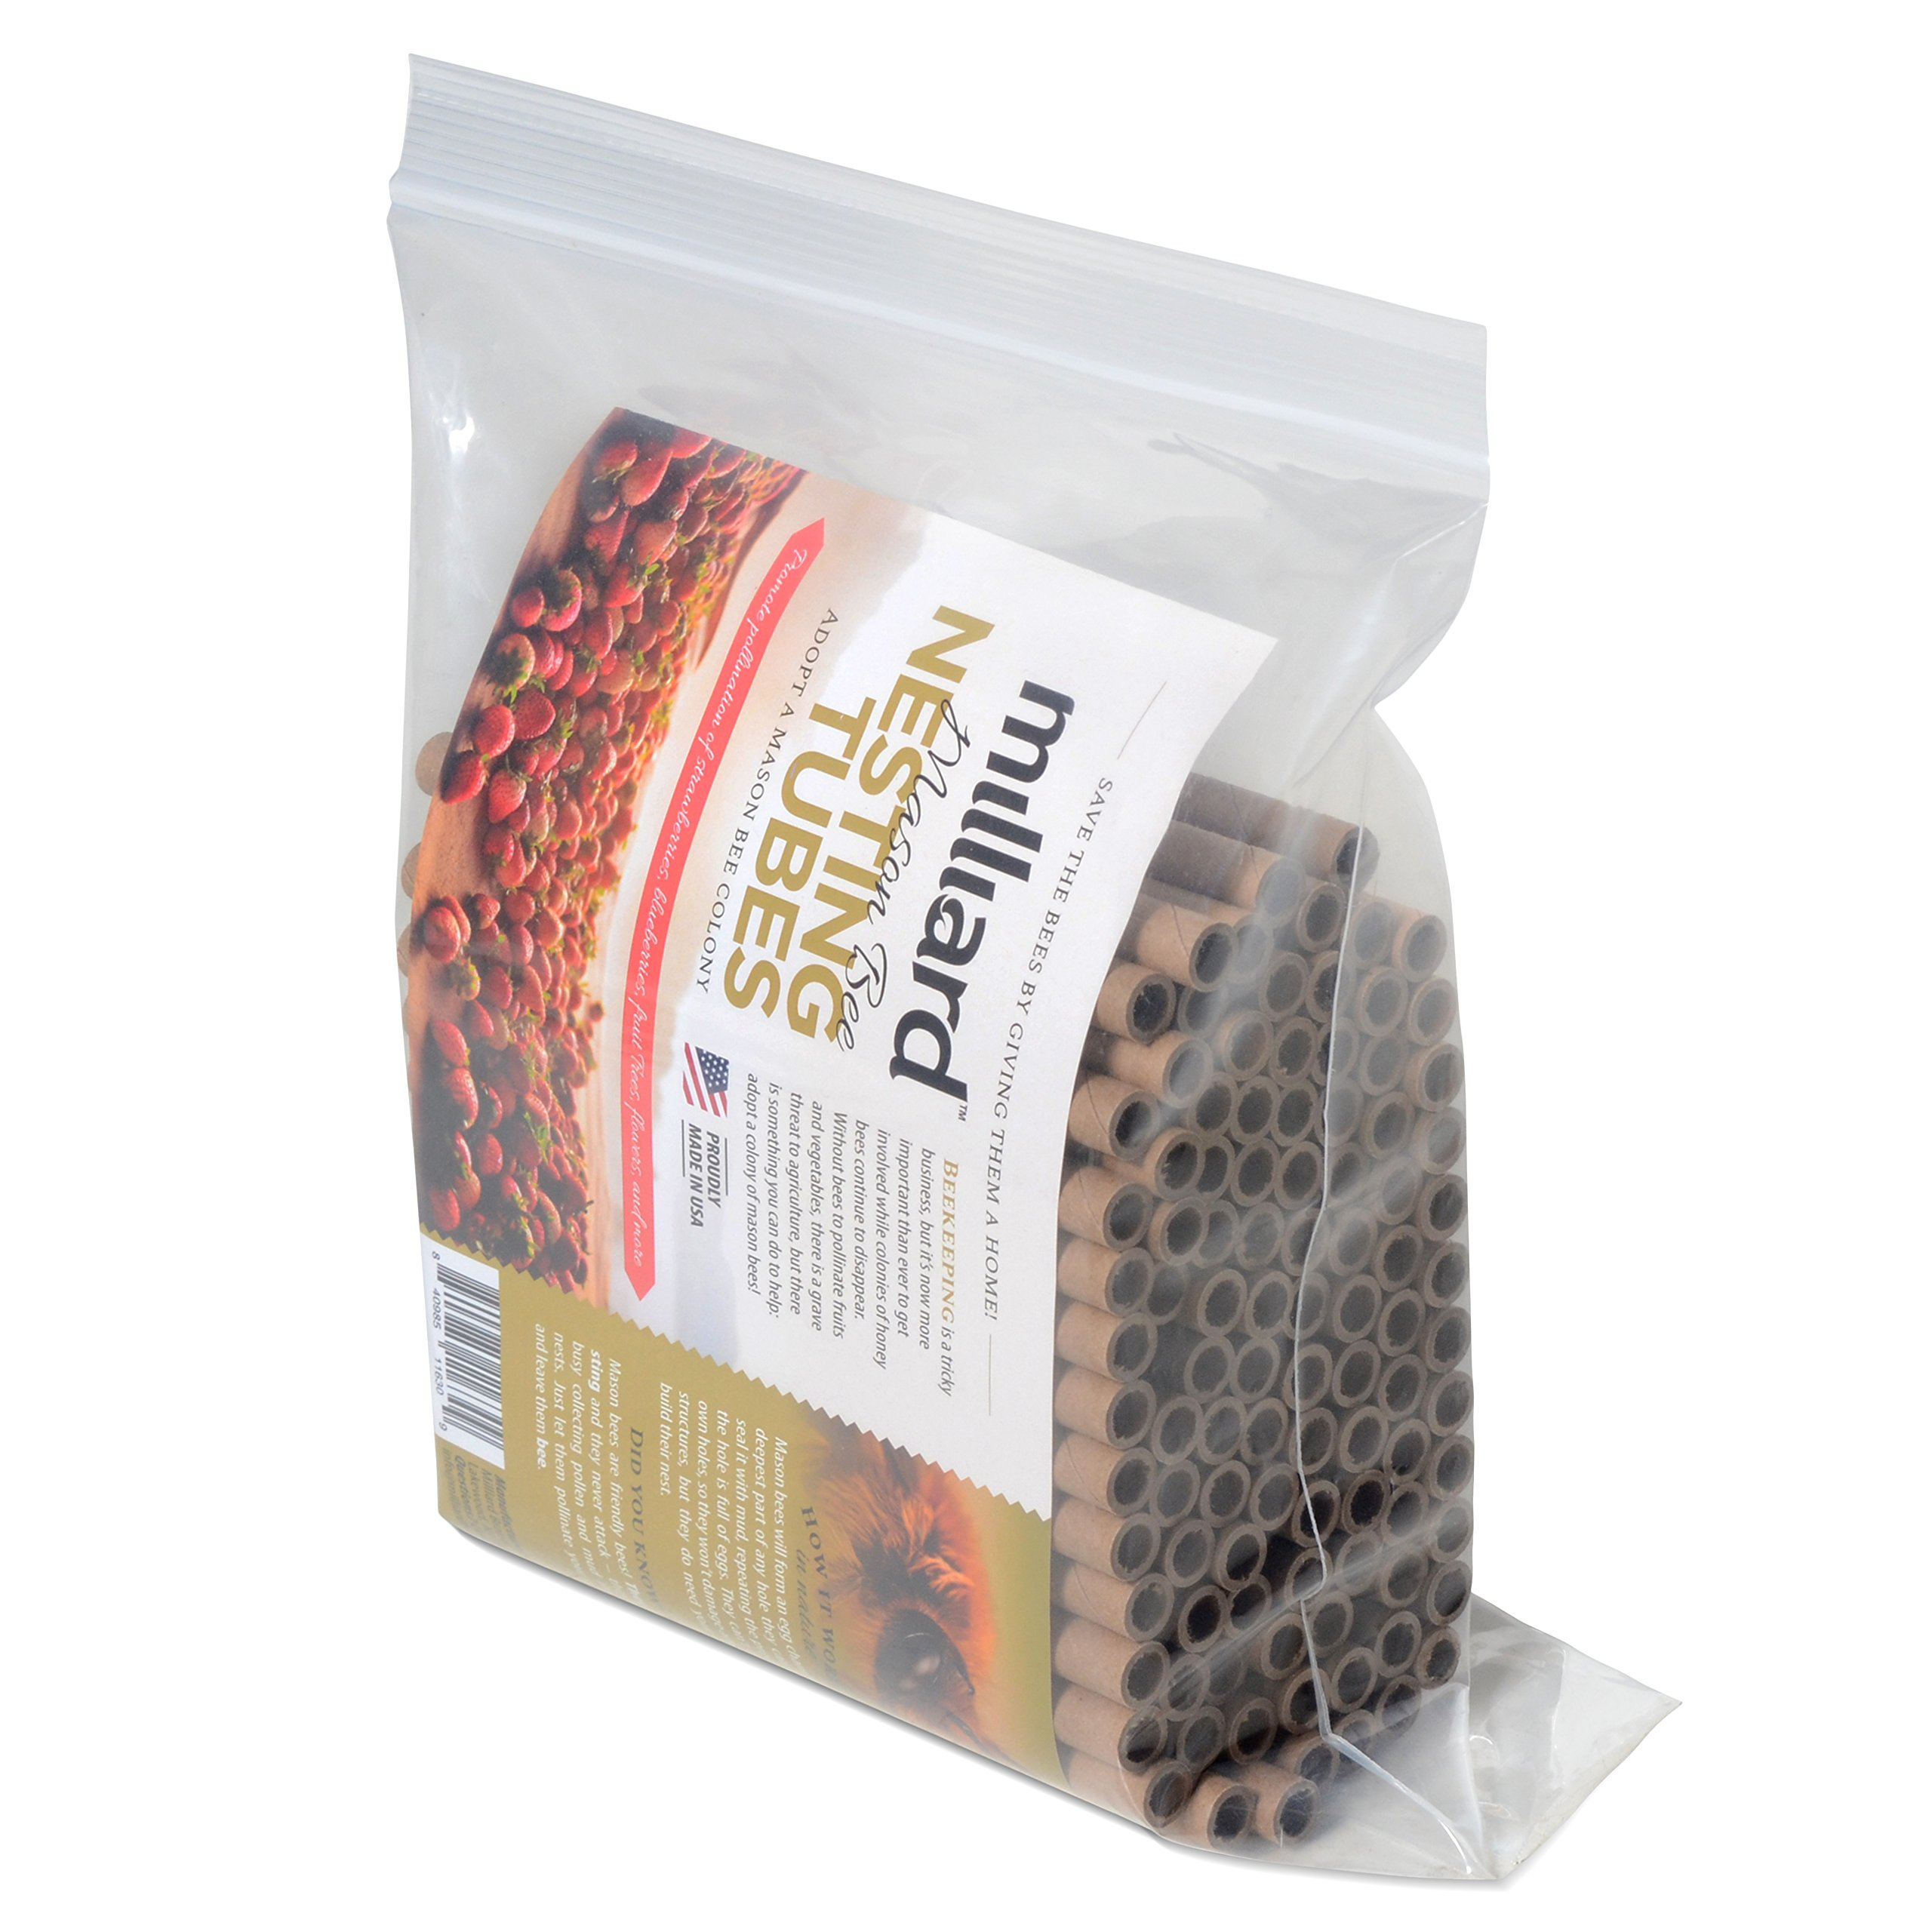 Milliard Mason Bee Nest Tubes Cardboard Refill- 100 Tube Pack/Length 6 inch Opening Diameter 5/16 inches by Milliard